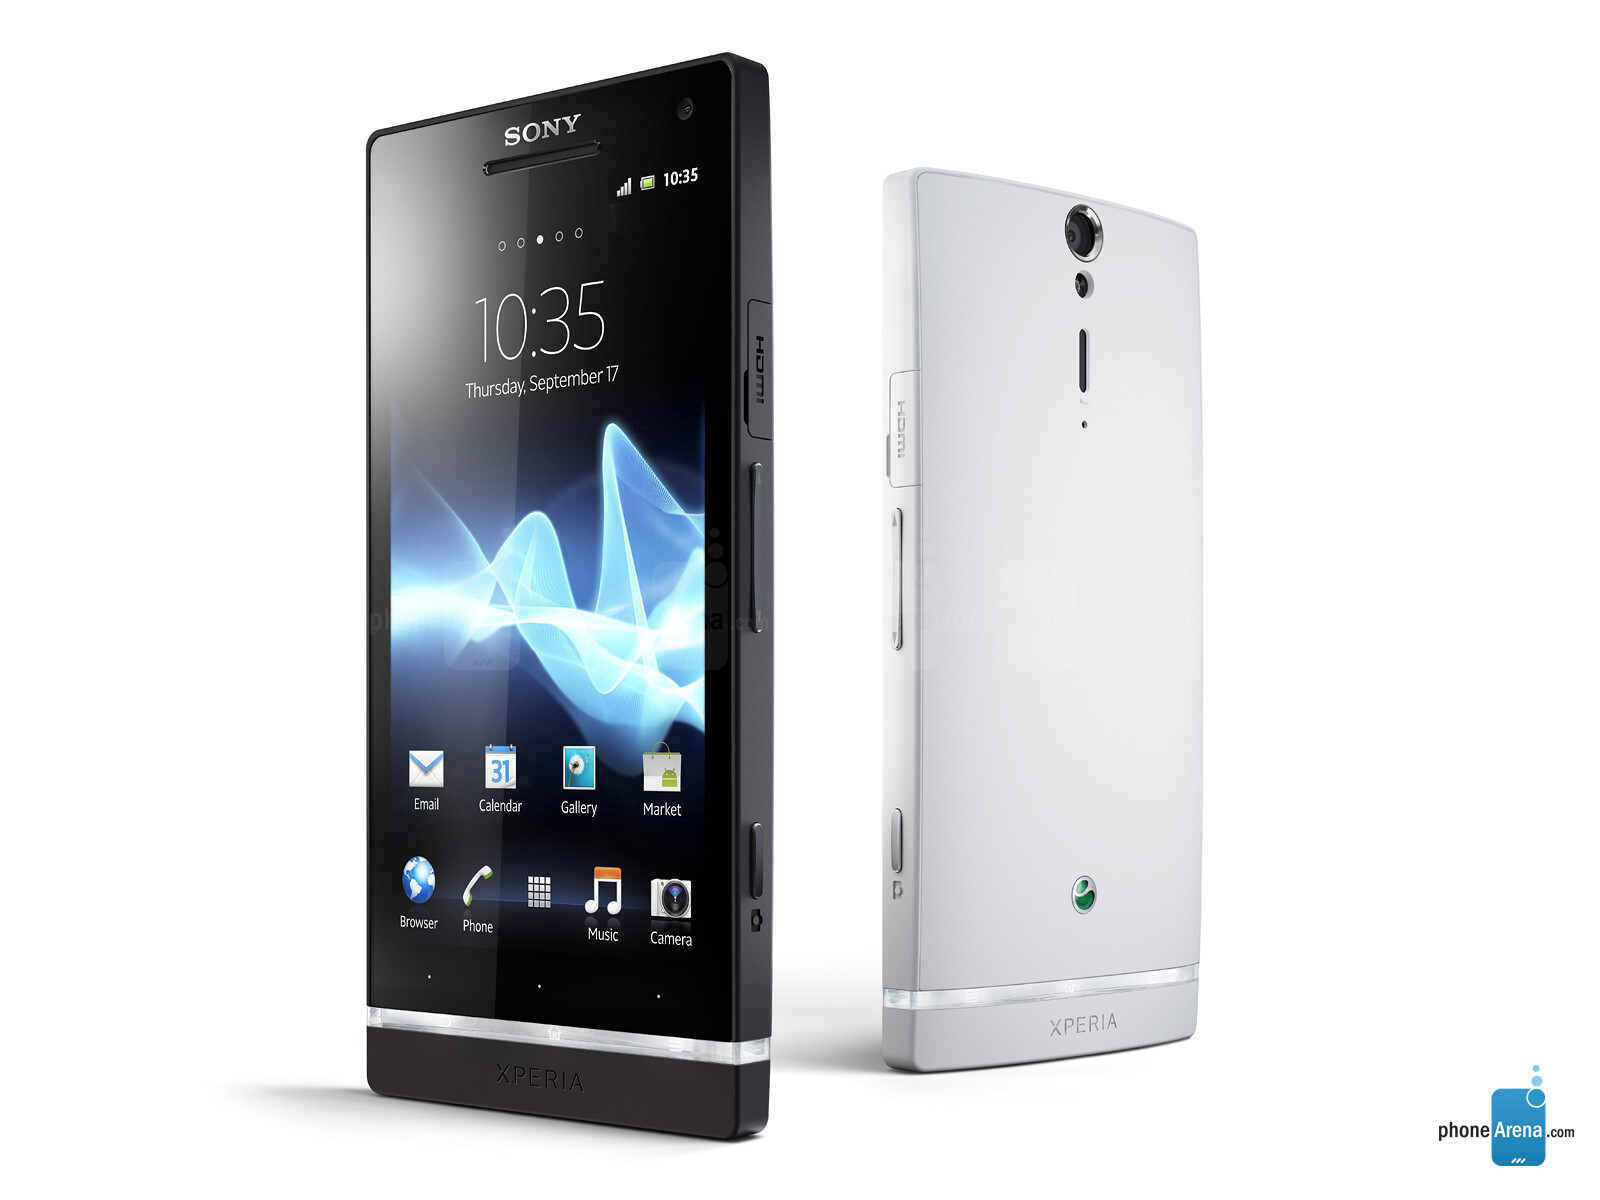 sony xperia s specs. Black Bedroom Furniture Sets. Home Design Ideas